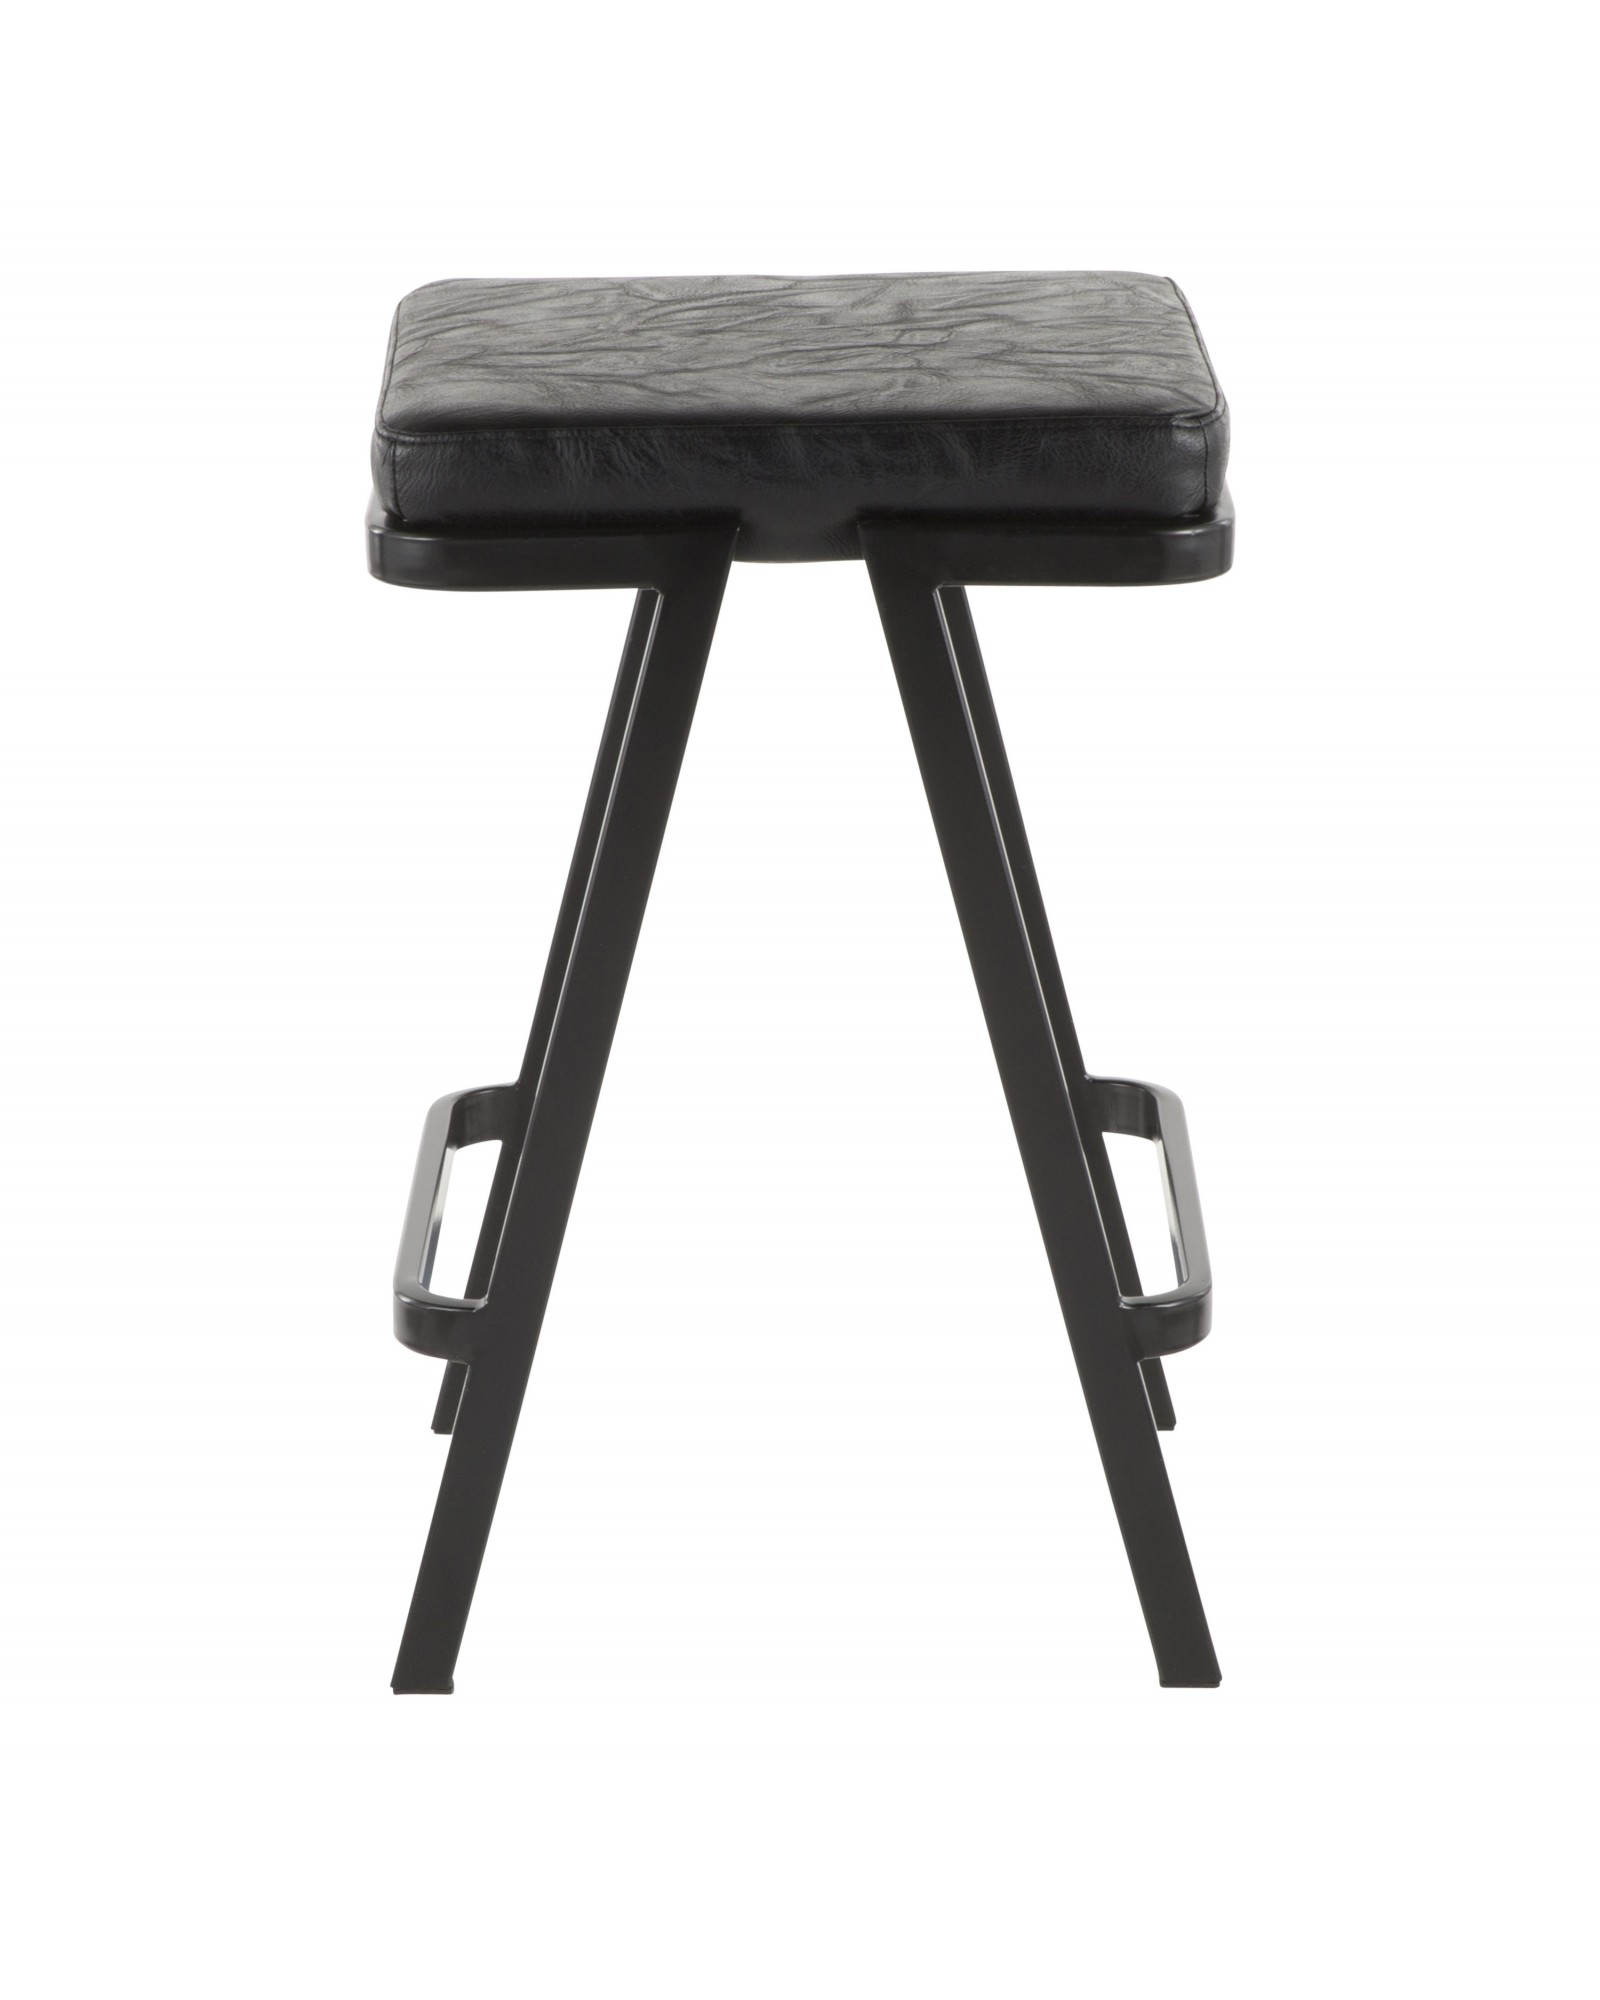 Seven Industrial Counter Stool in Black Metal and Black Faux Leather